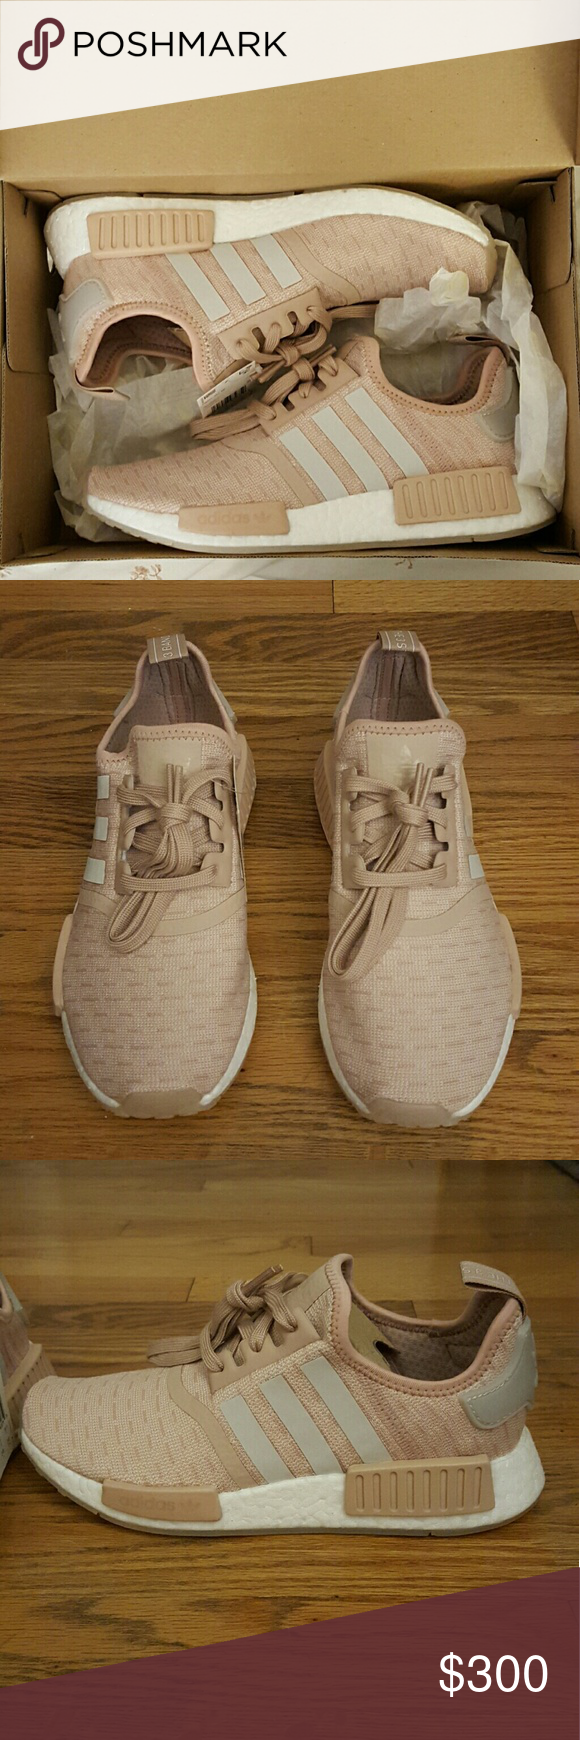 timeless design 9077e fb88e ... Womens Adidas Originals NMD R1 Women s Adidas Originals NMD R1 in ash  pearl chalk pearl ...